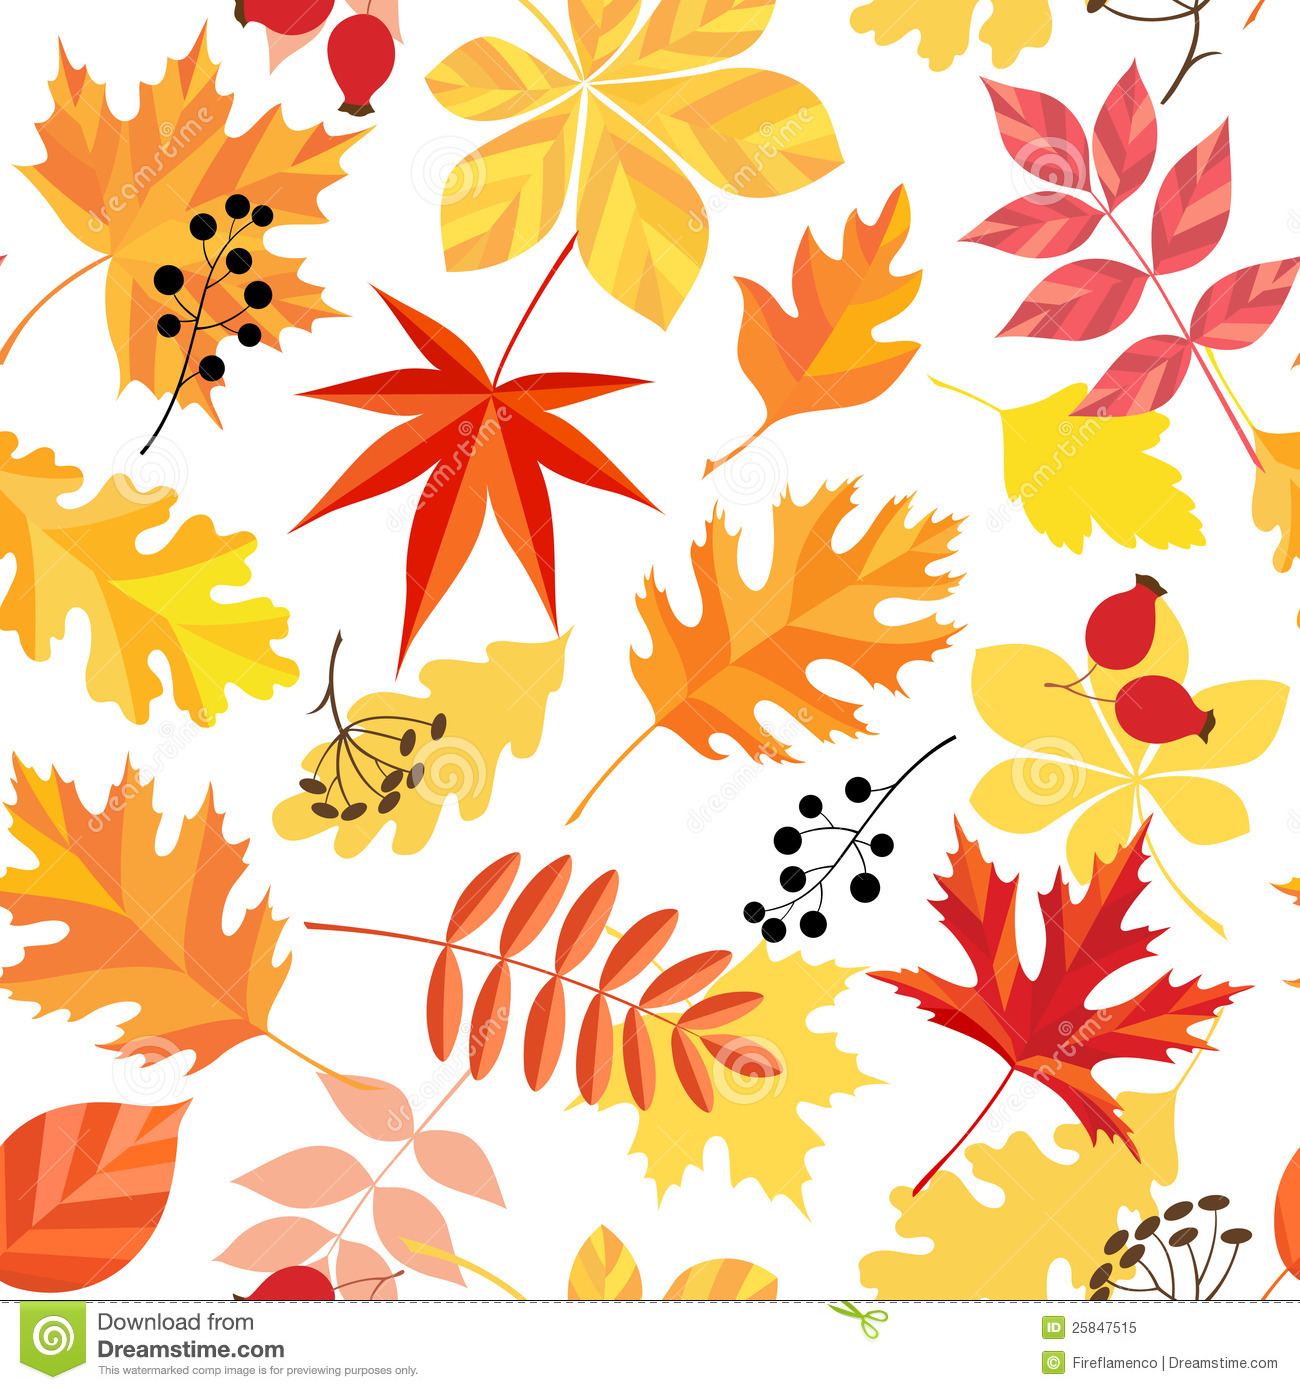 Fall Maple Leave Tiled Wallpaper Autumn Leaves Pattern Royalty Free Stock Photo Image